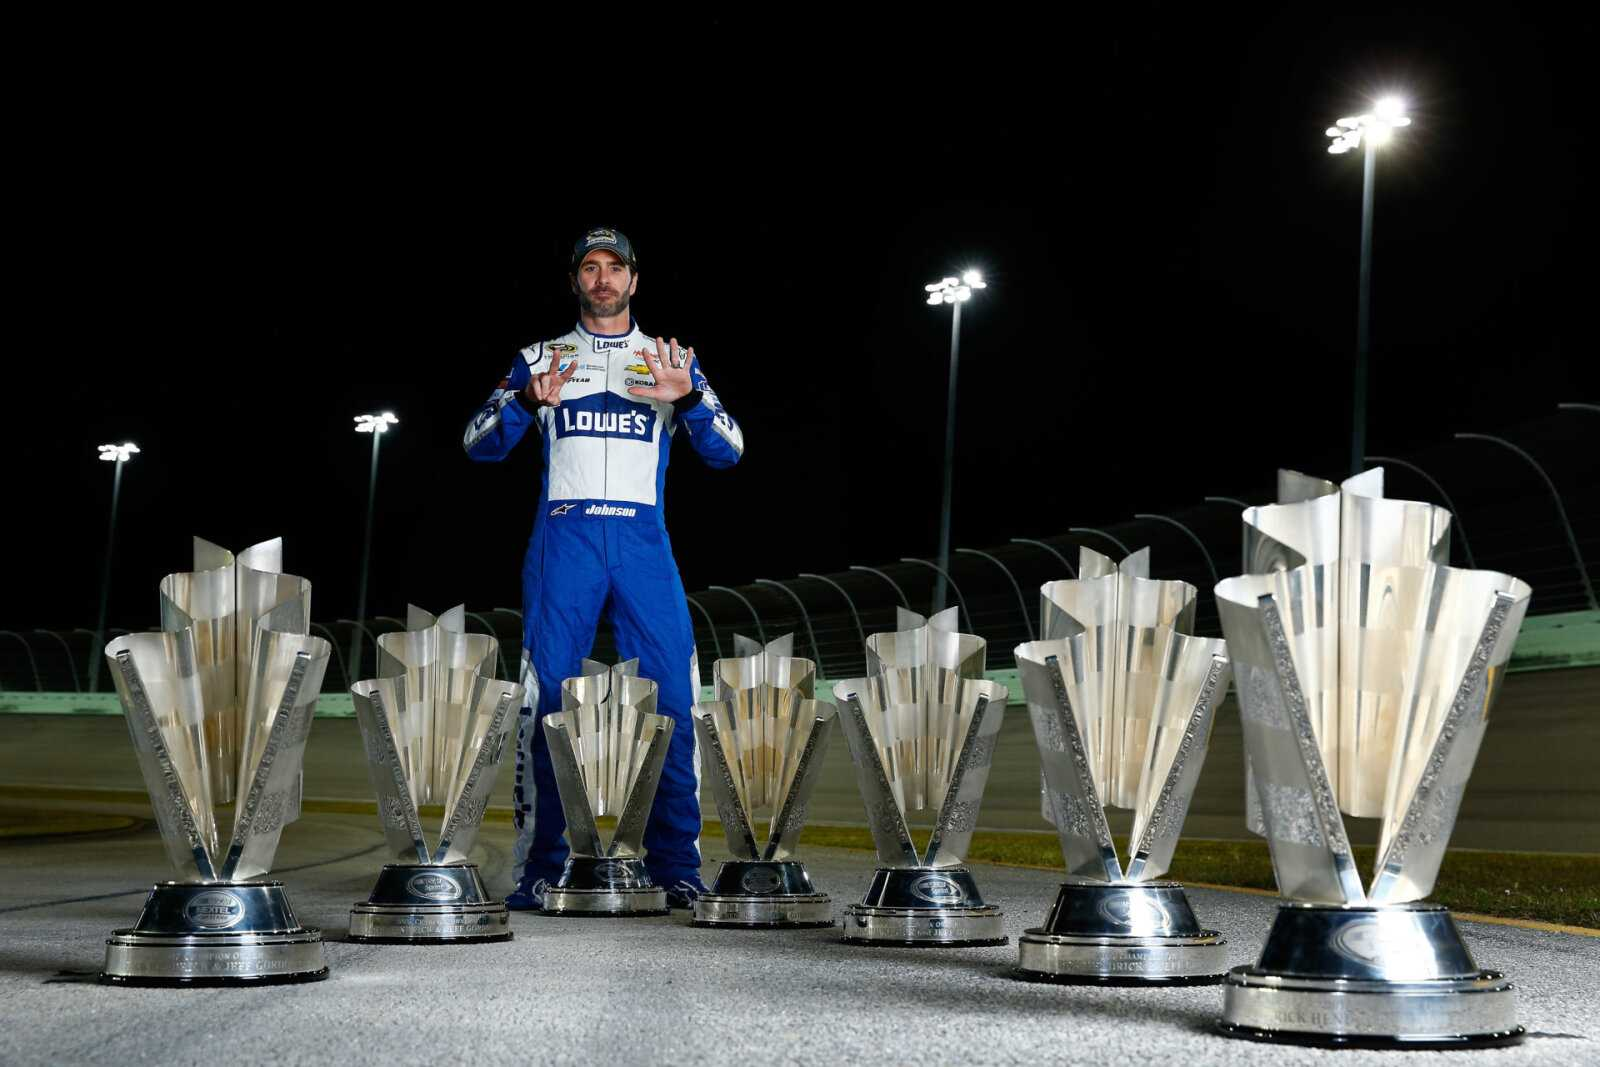 Quels records Jimmie Johnson a-t-il créés dans son illustre carrière NASCAR?